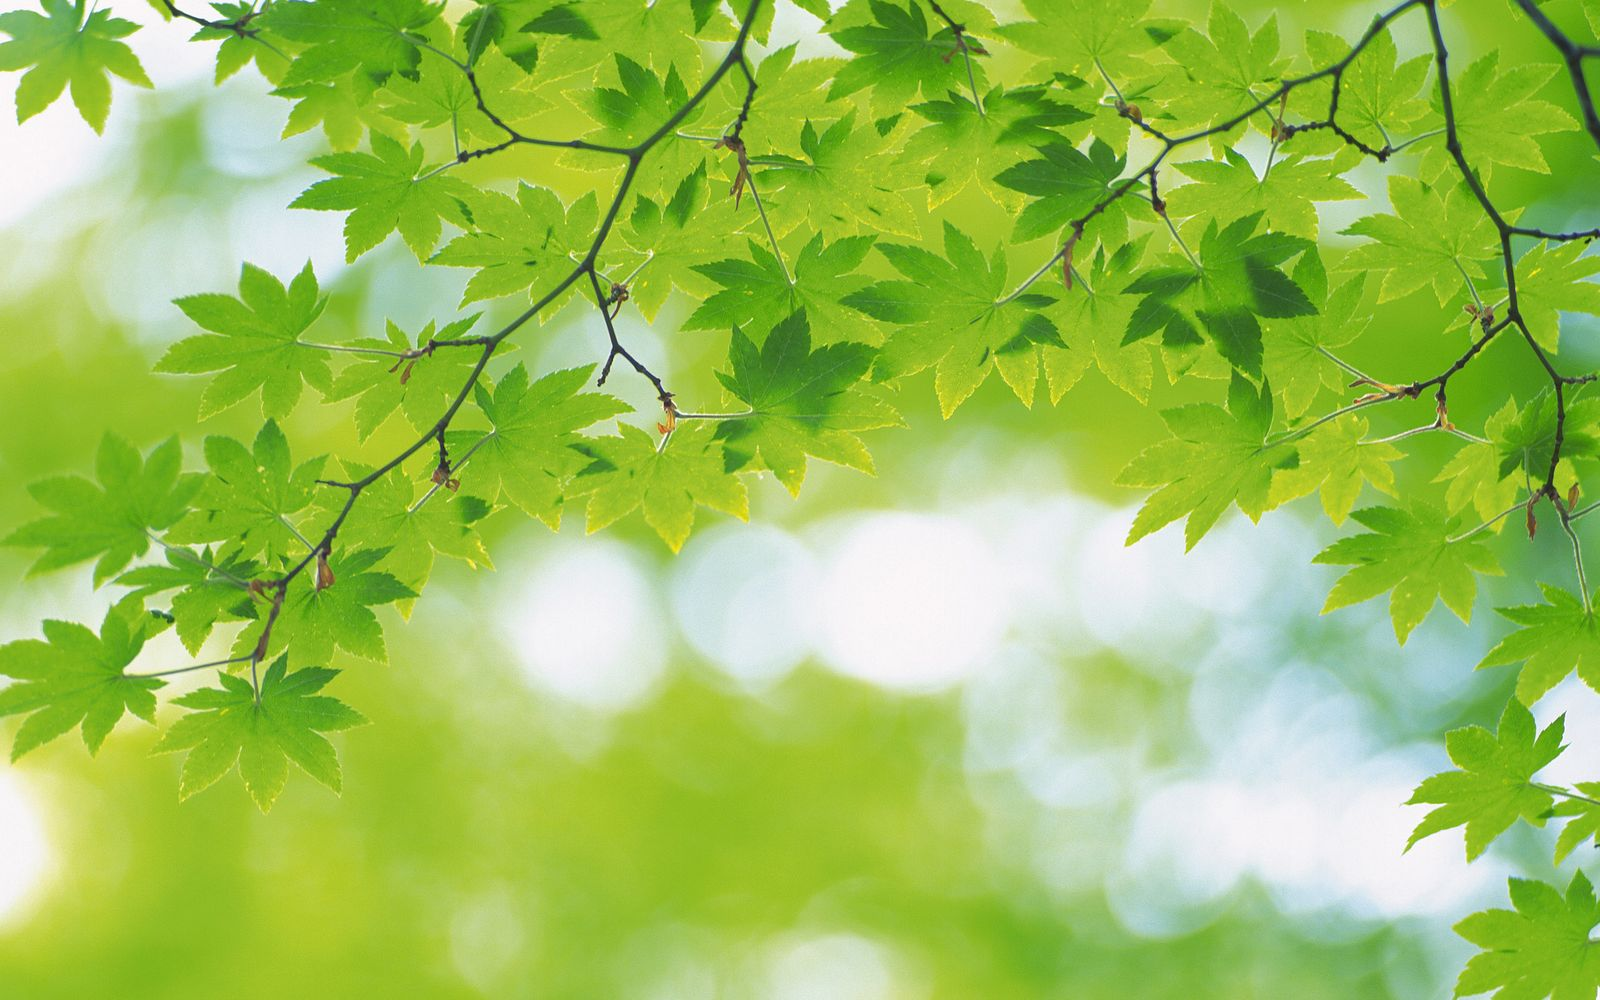 Green Leaves and Green Backgrounds 1600x1000